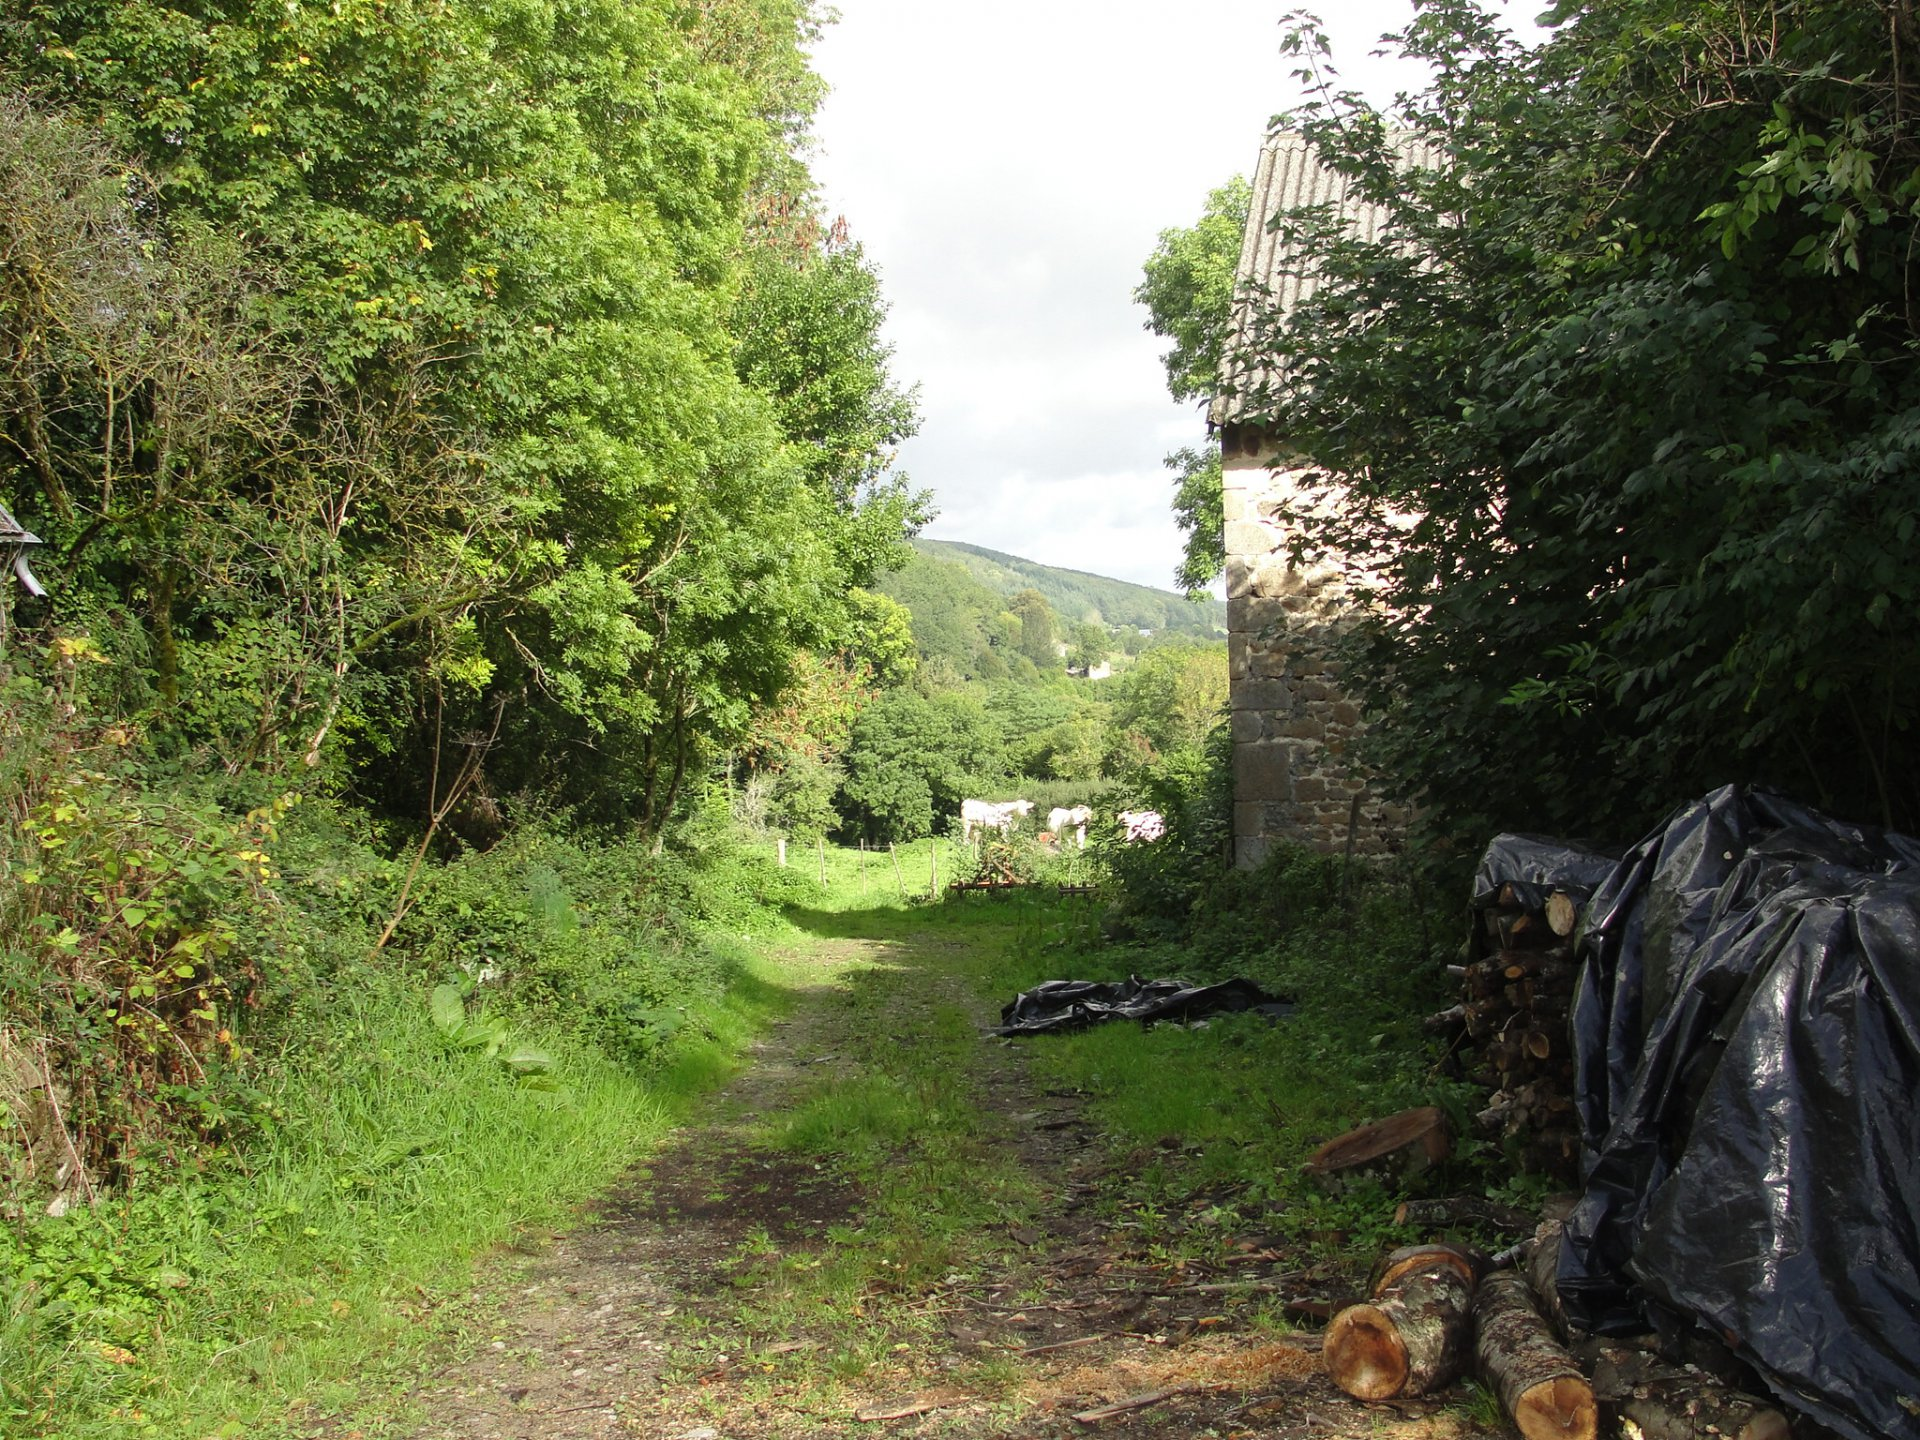 For sale, Puy de Dôme to renovate stone house with barn.